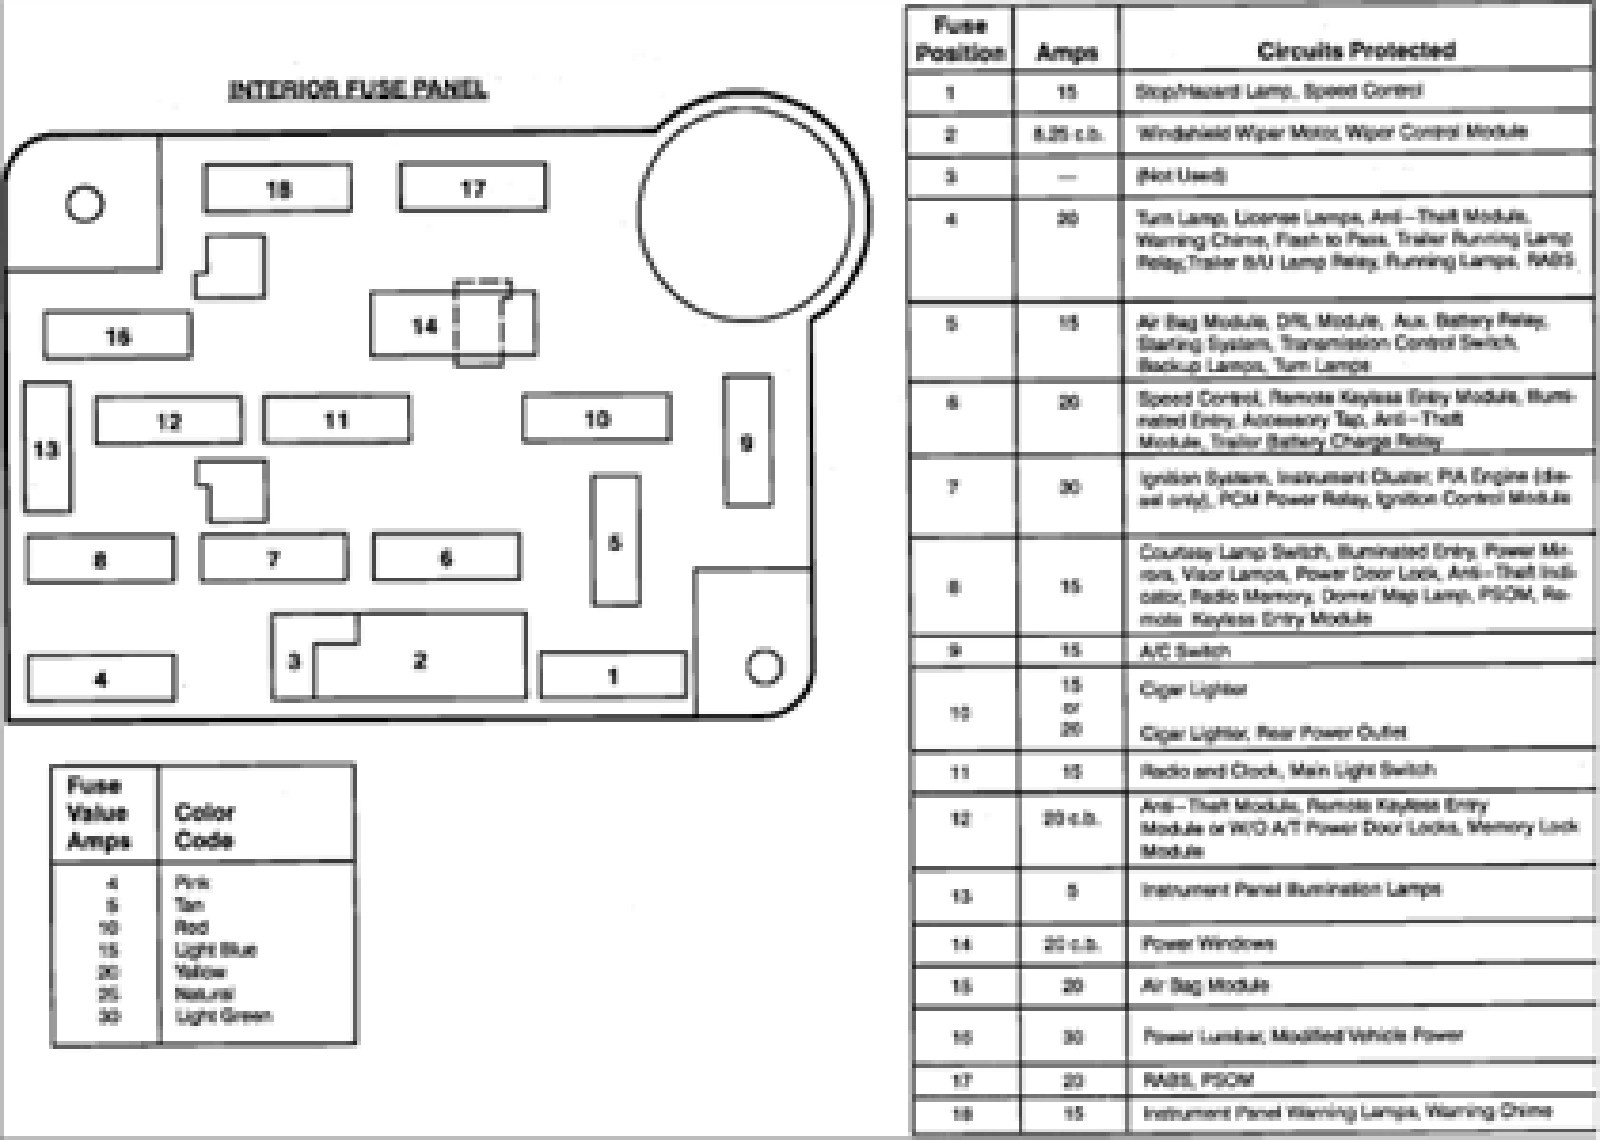 hight resolution of ford e 150 questions fuse diagram for a 1993 ford econoline van ford e 150 fuse box diagram ford e150 fuse diagram